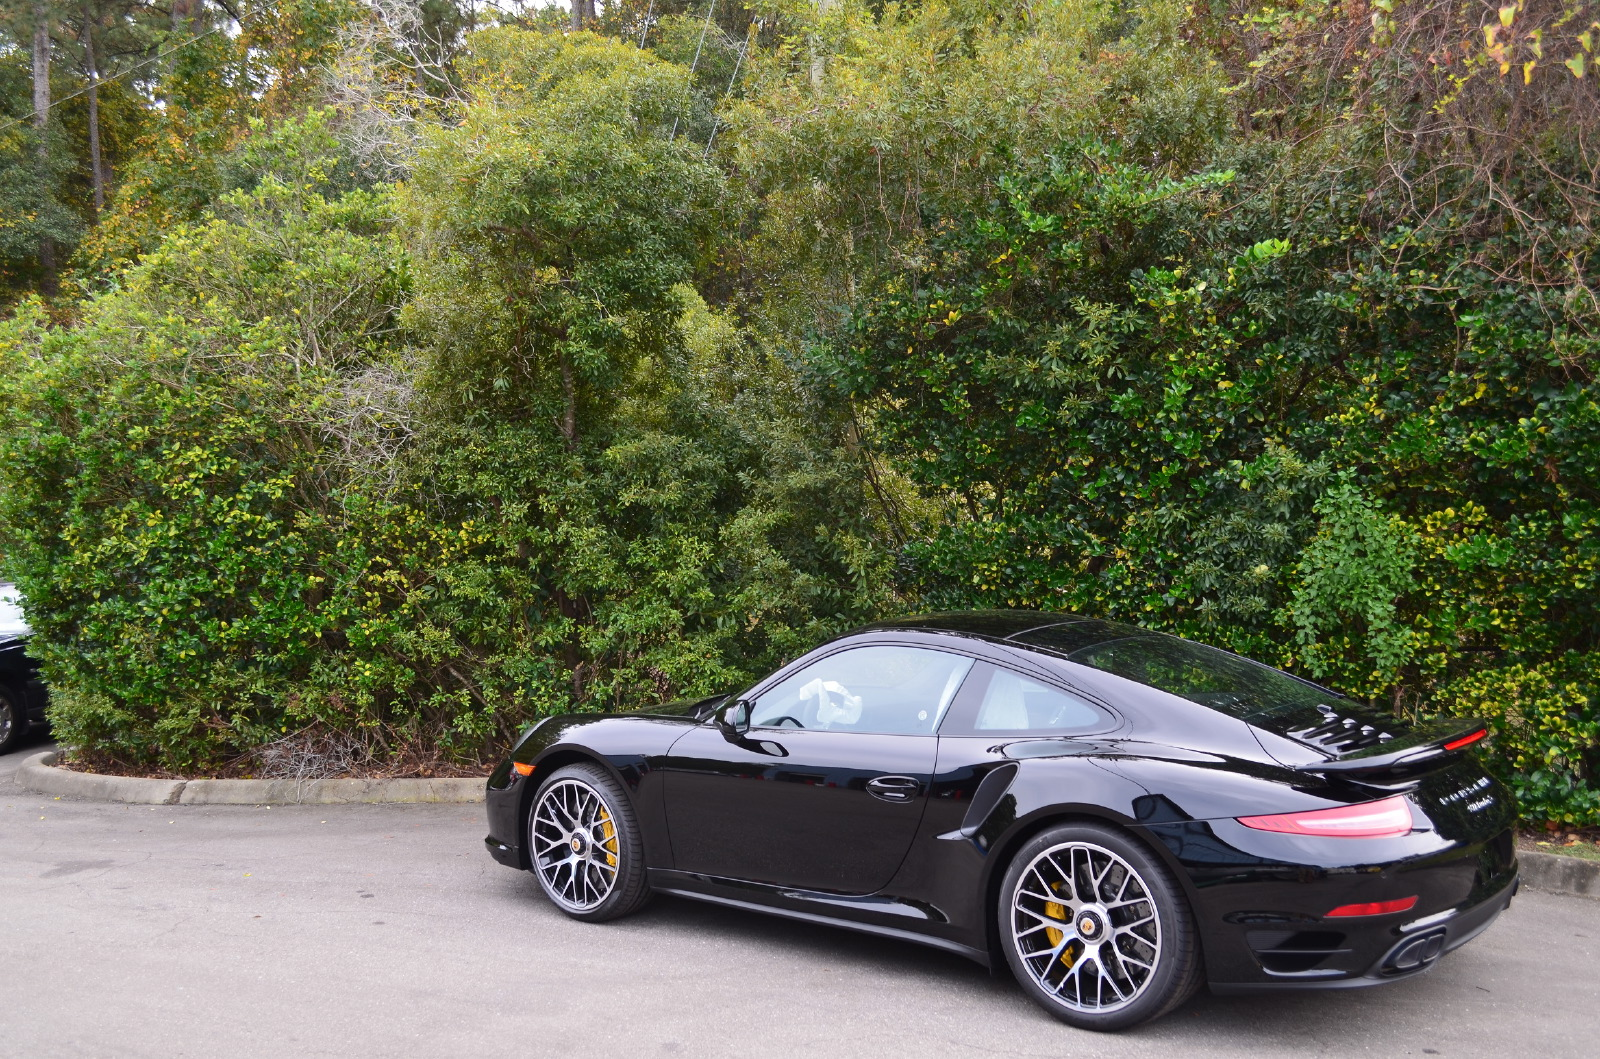 2014 porsche 991 911 turbo s hitting dealers in the us drag racing fast cars. Black Bedroom Furniture Sets. Home Design Ideas